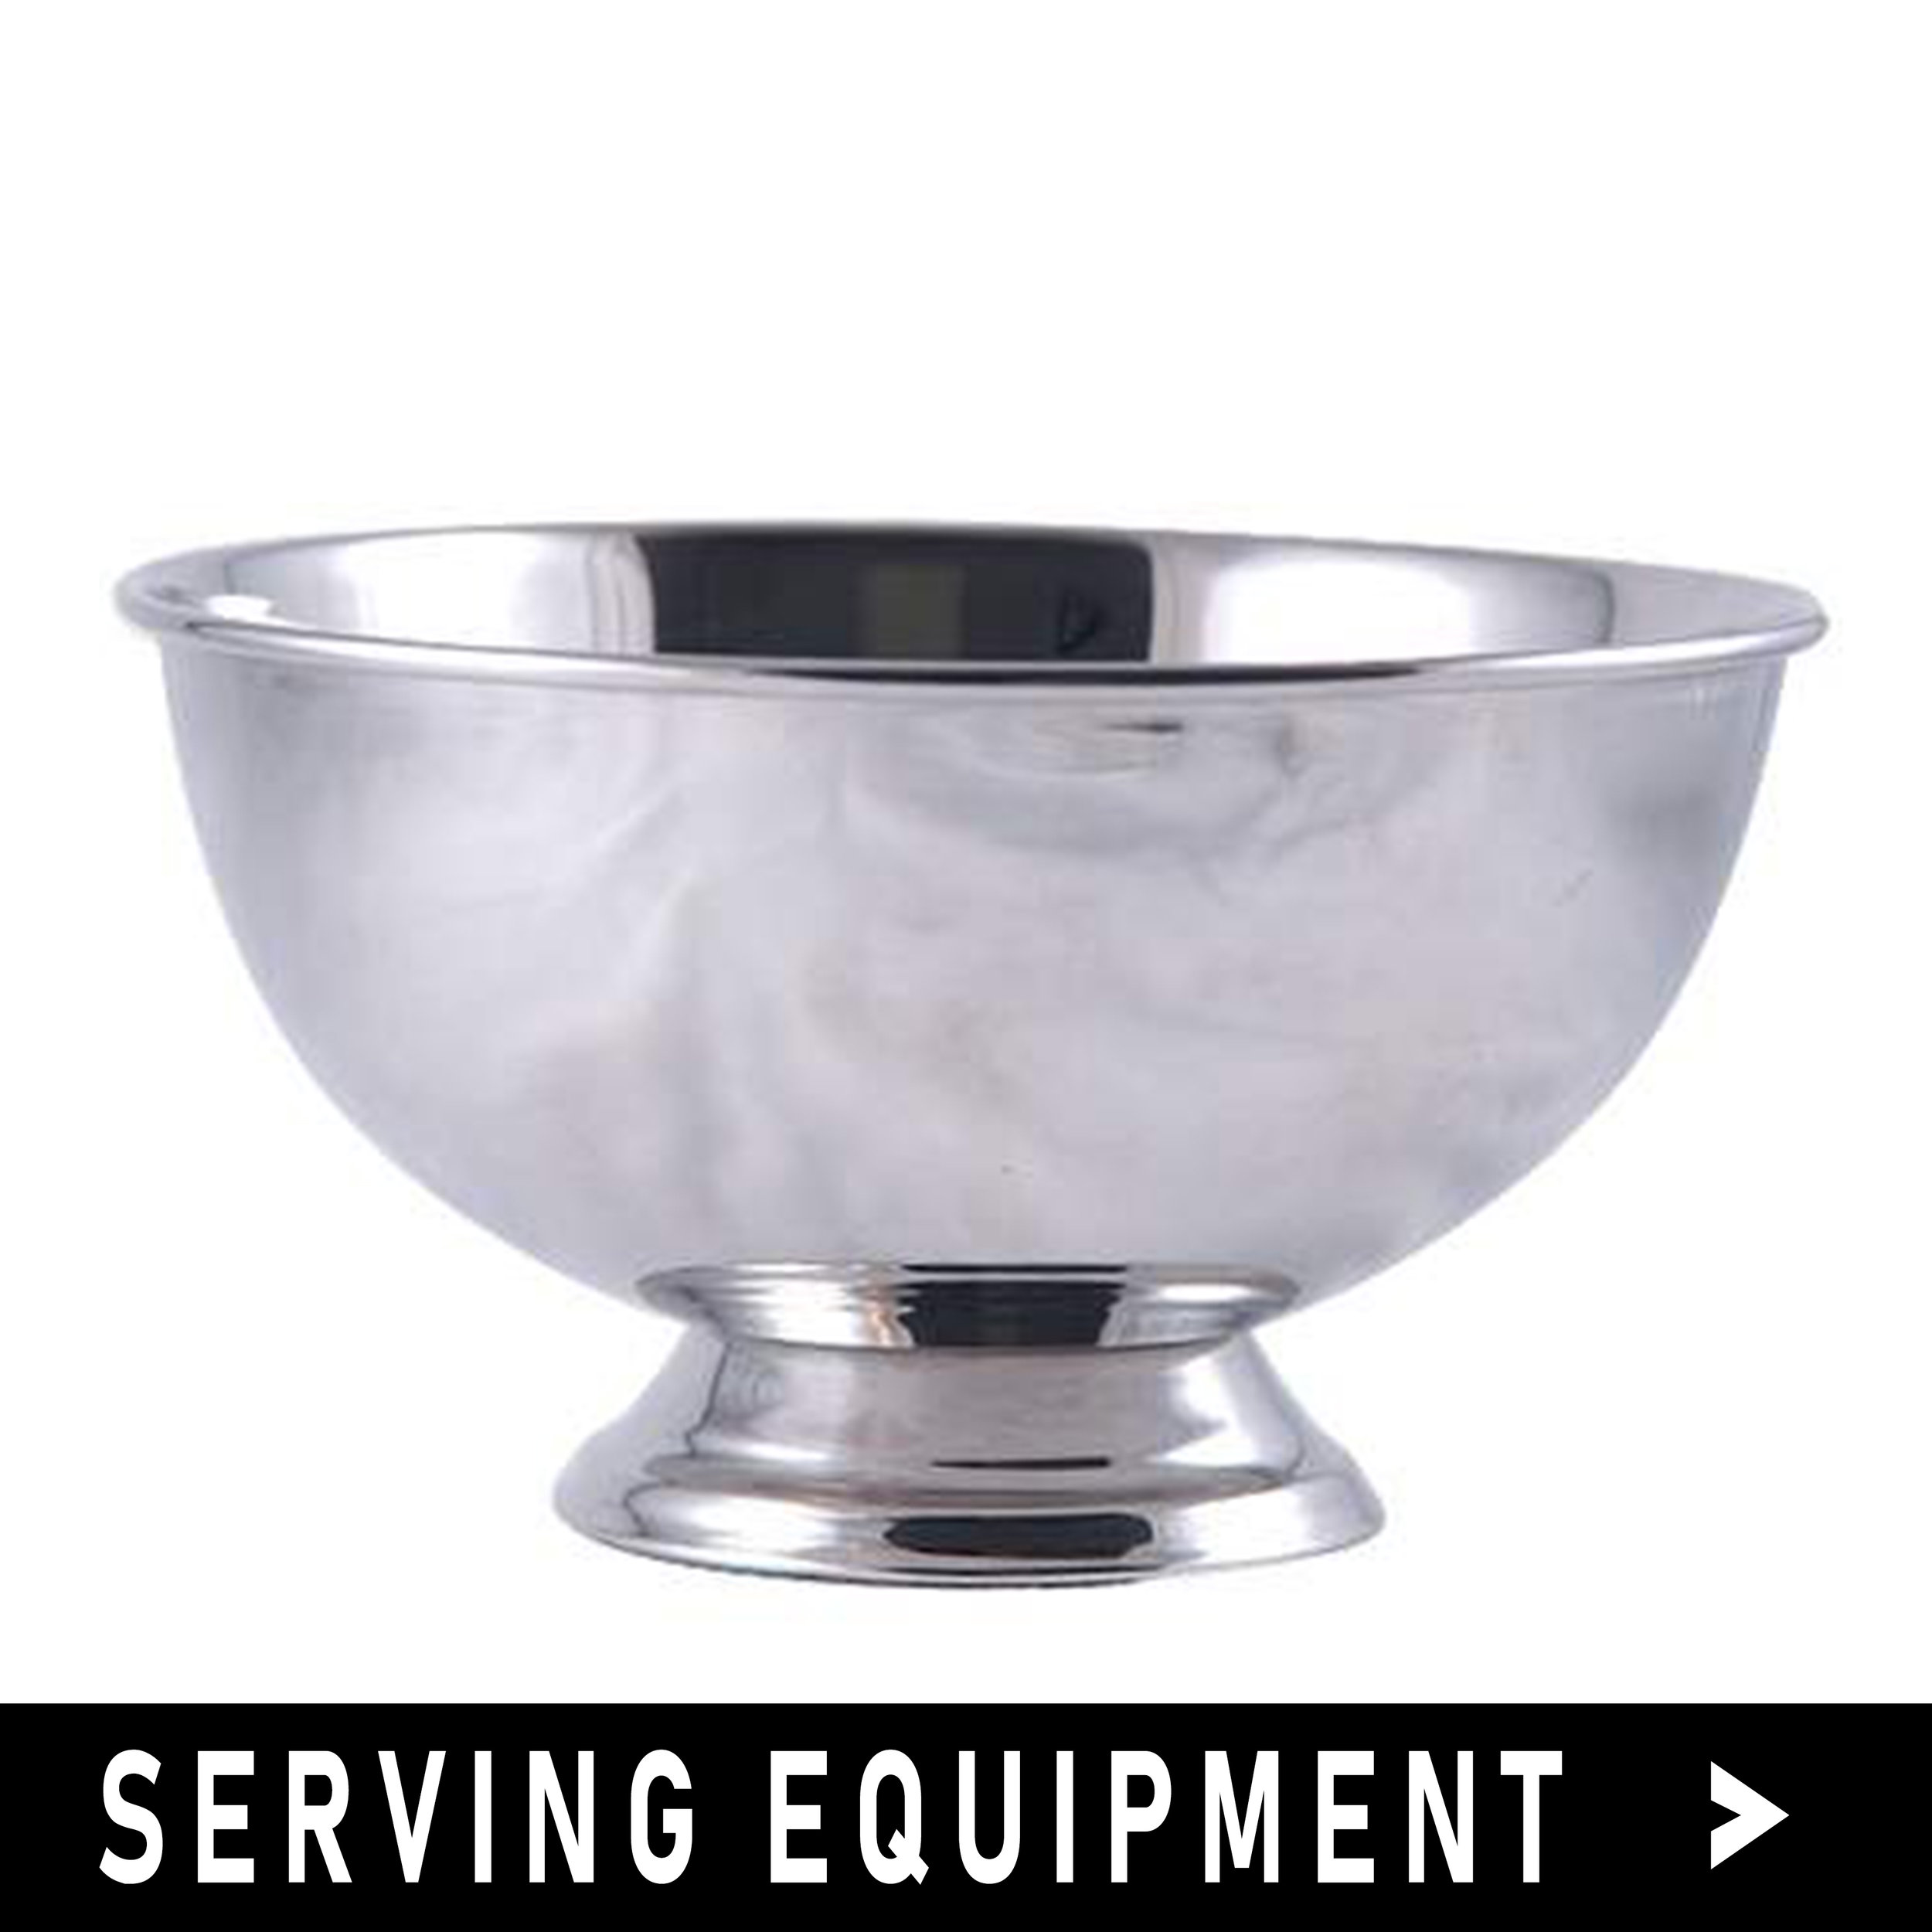 SERVING EQUIPMENT.jpg